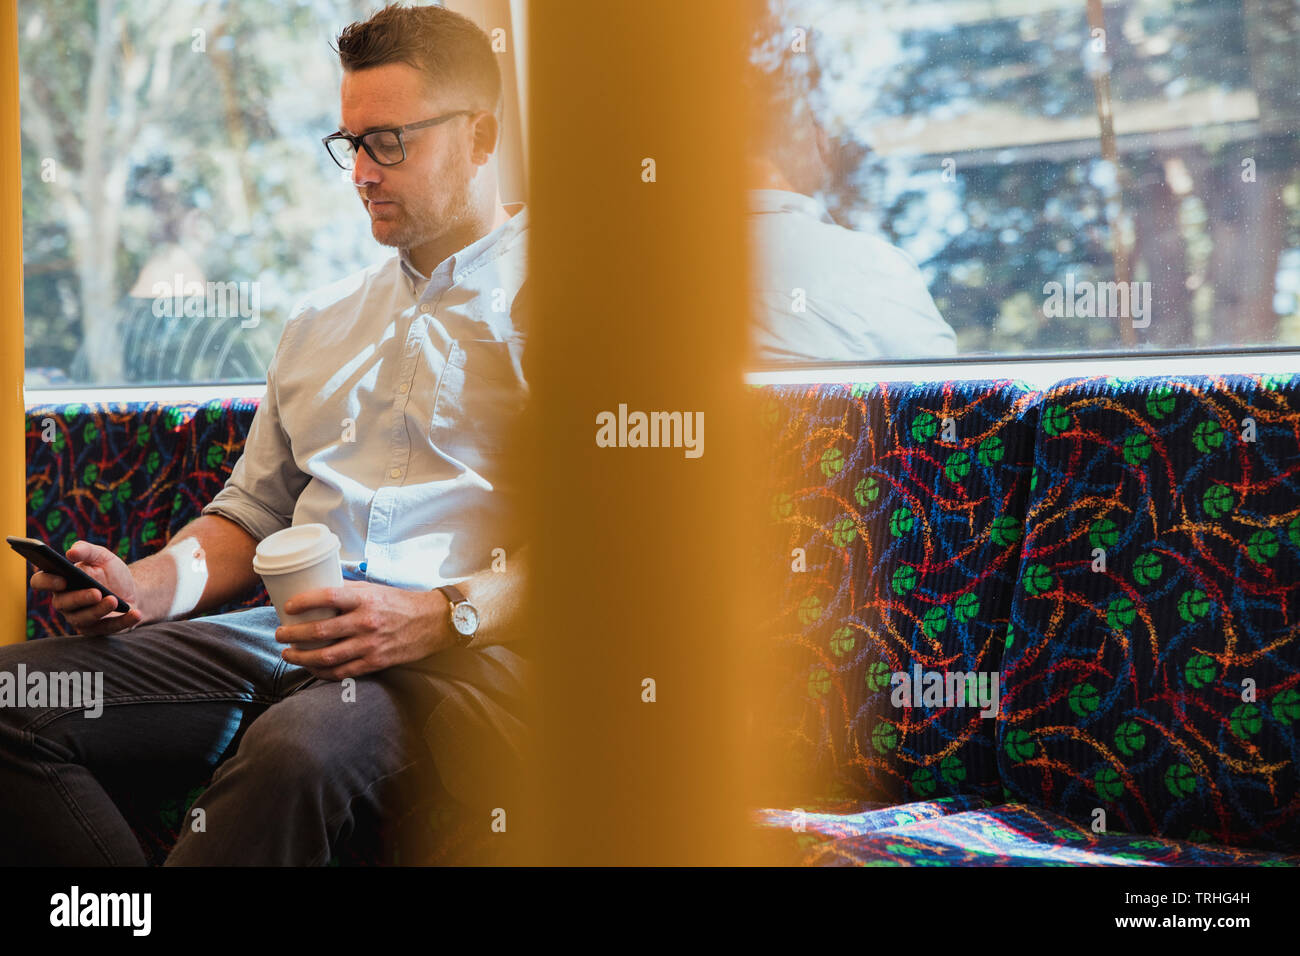 A shot of a mid-adult caucasian businessman sitting on a train commuting to work in Perth, Australia. He is using his smart phone while holding a hot - Stock Image